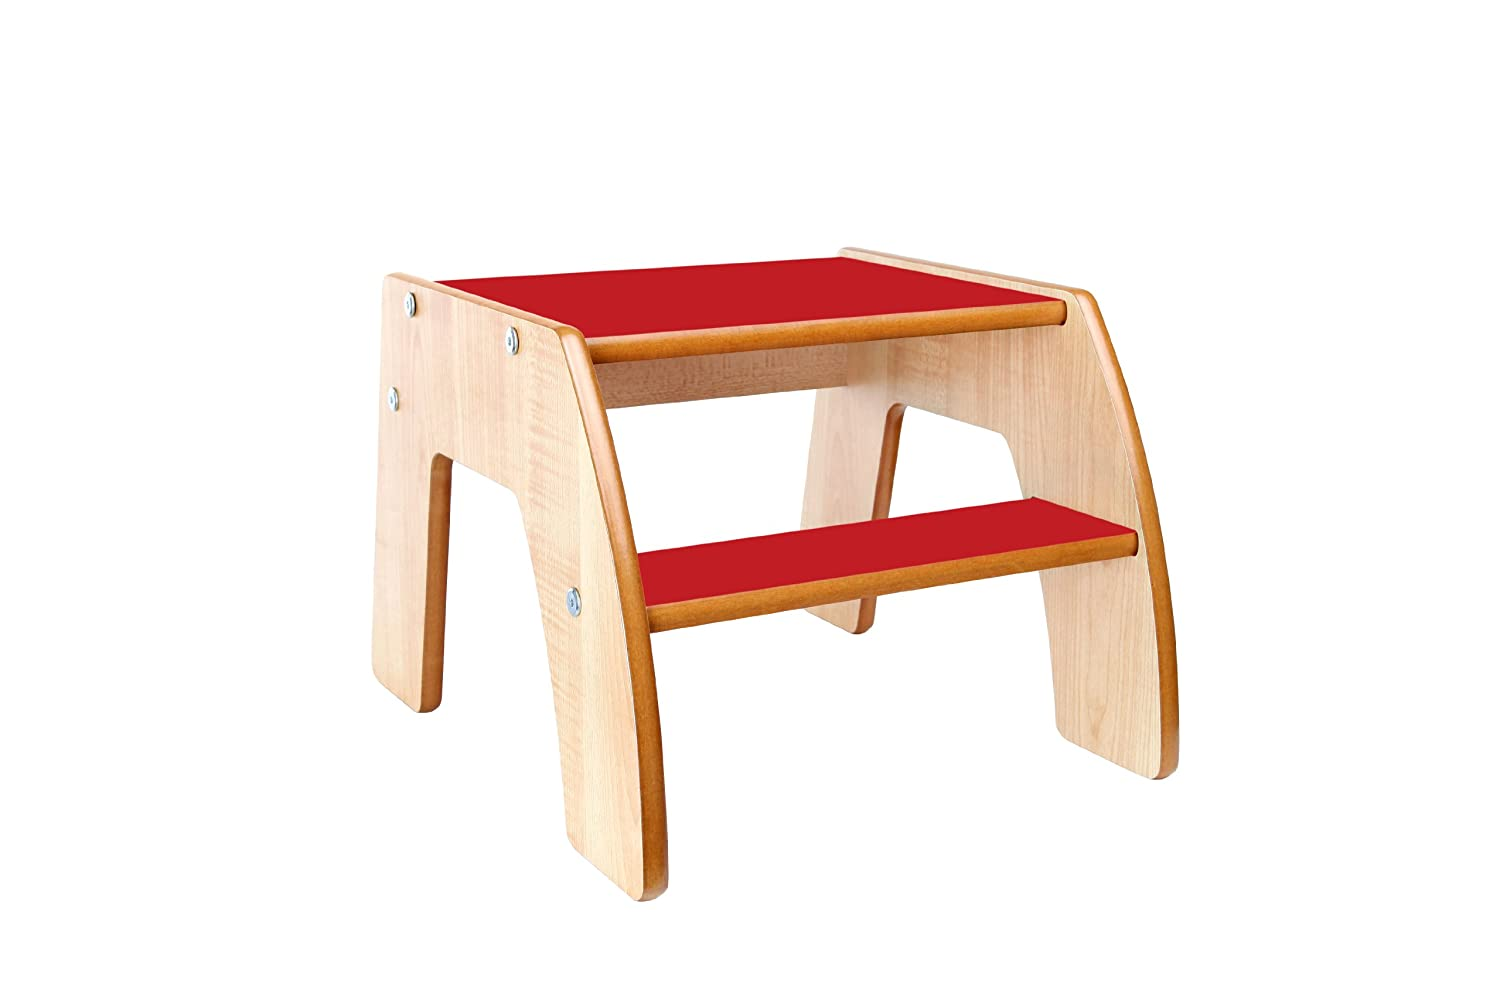 Little Helper FunStep Toddler u0026 Child Safety Step Stool (Maple/Red) Amazon.co.uk Toys u0026 Games  sc 1 st  Amazon UK & Little Helper FunStep Toddler u0026 Child Safety Step Stool (Maple/Red ... islam-shia.org